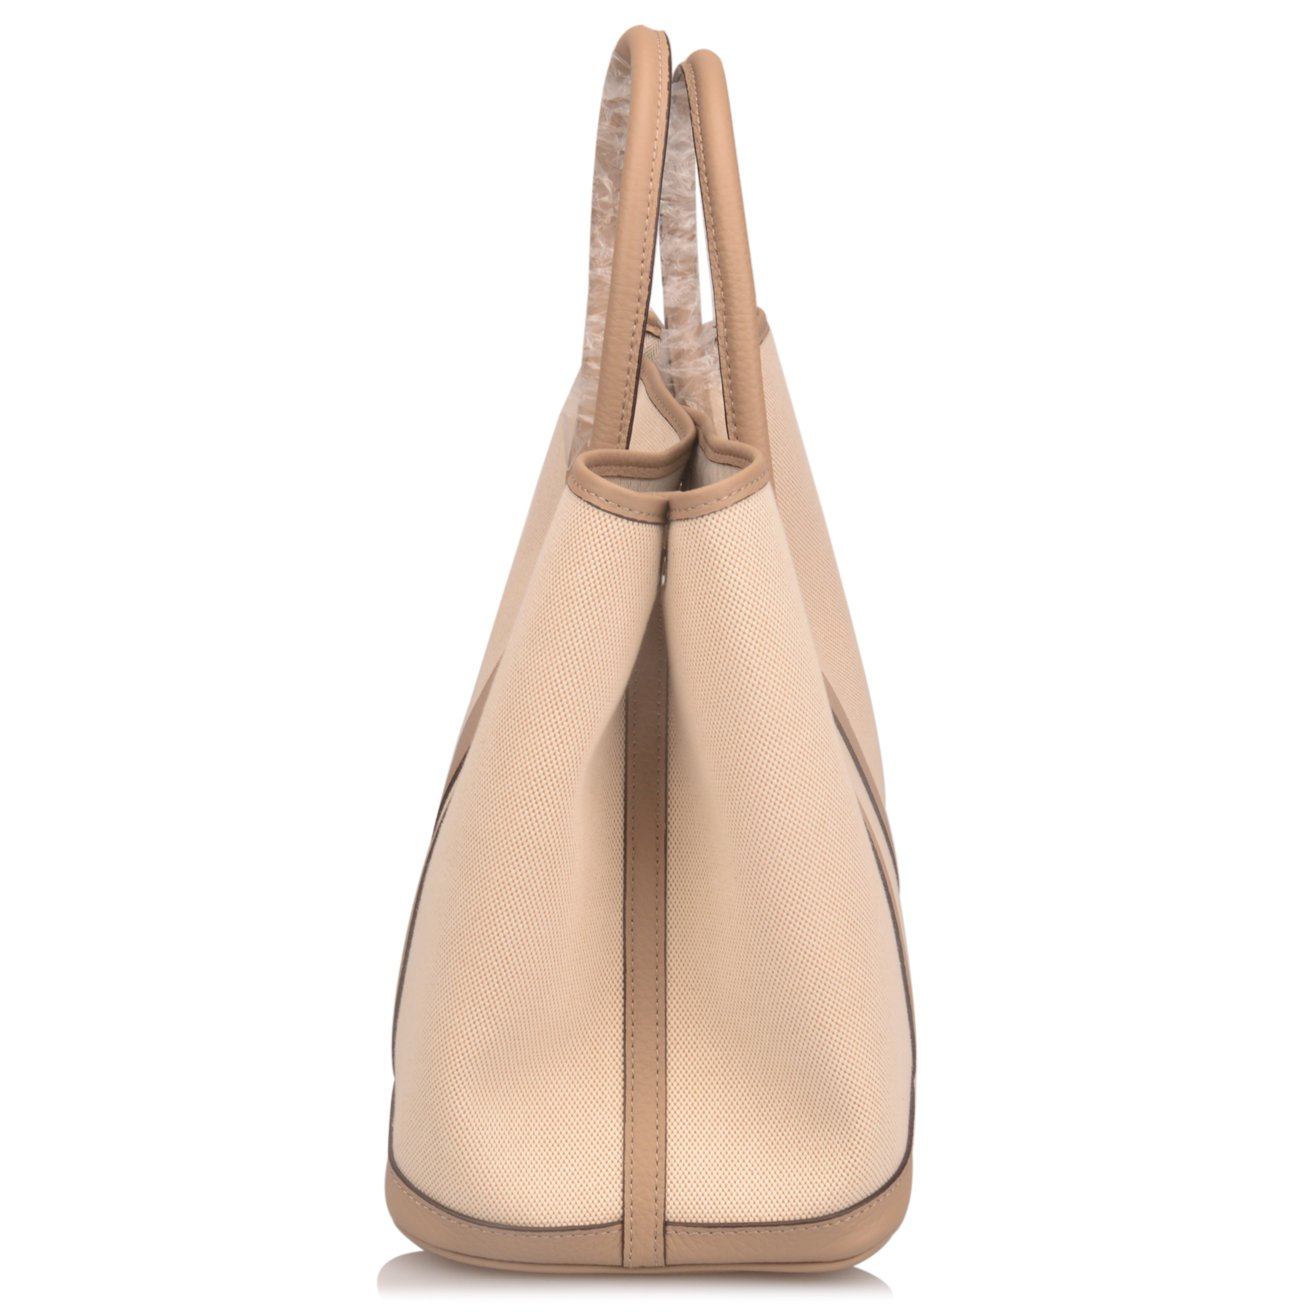 Ainifeel Women's Genuine Leather Top Handle Handbag Shopping Bag Tote Bag (Taupe(leather+canvas)) by Ainifeel (Image #3)